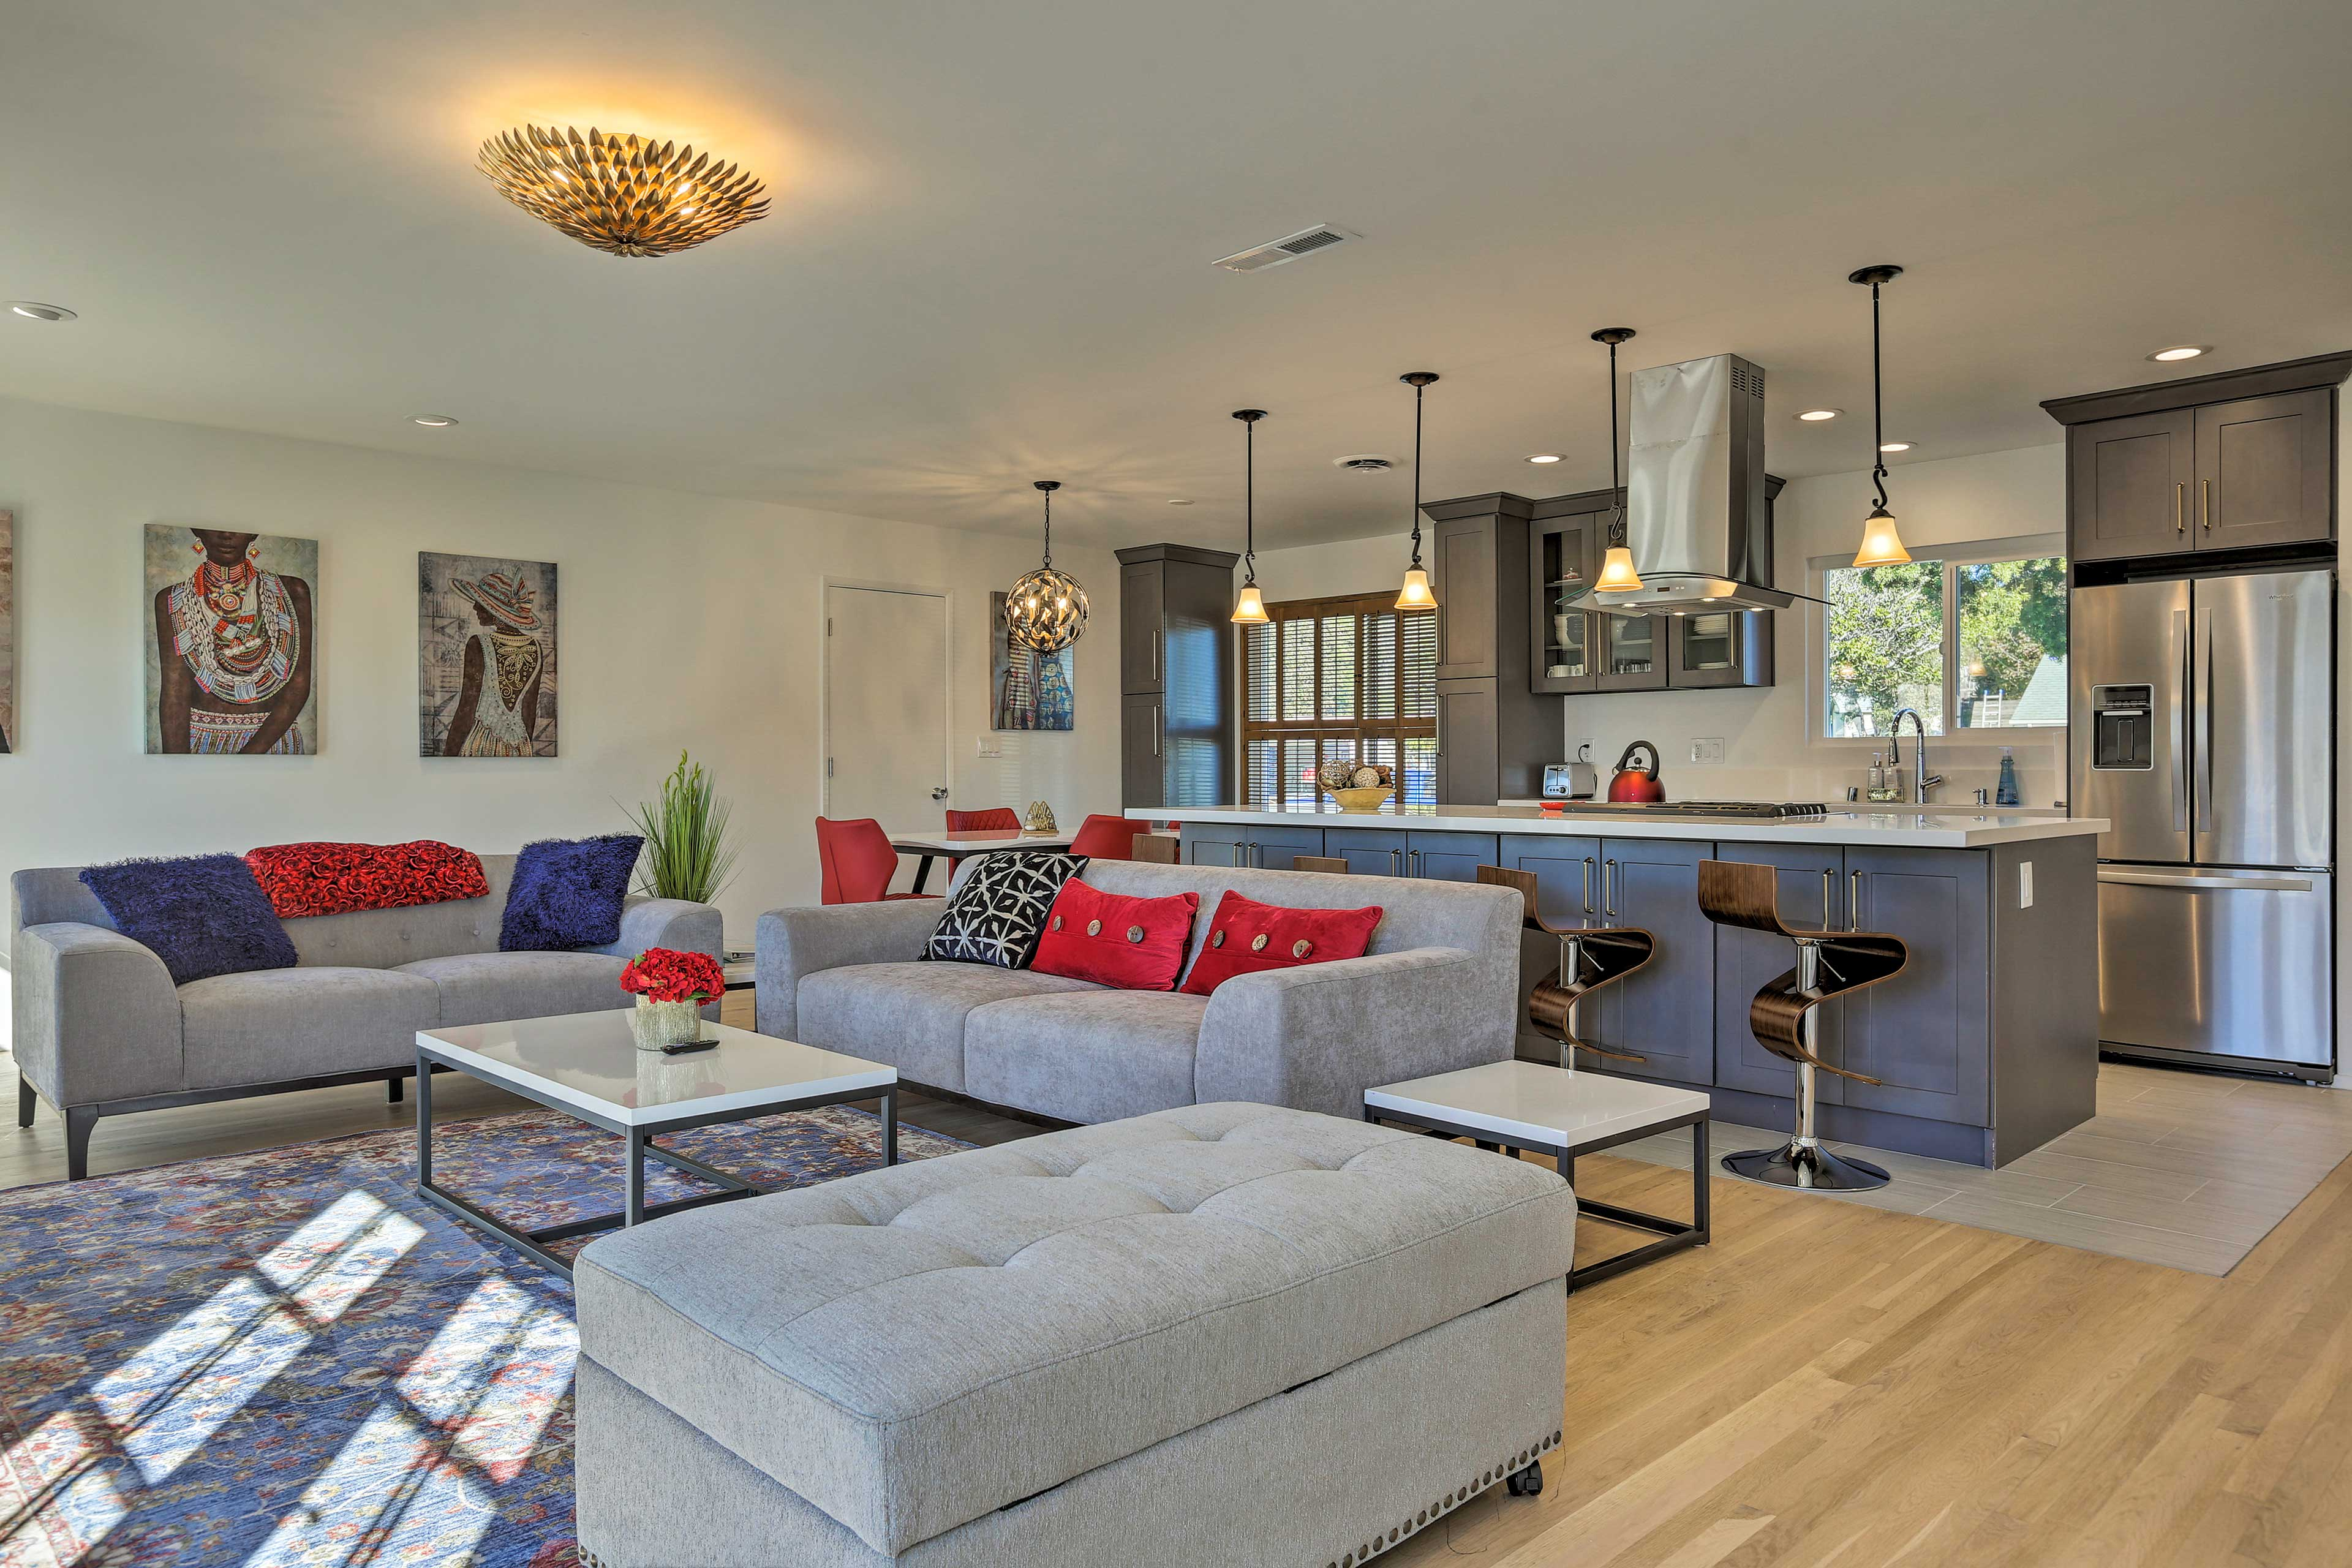 Modern decor and bright pops of color make this vacation rental home stand out!